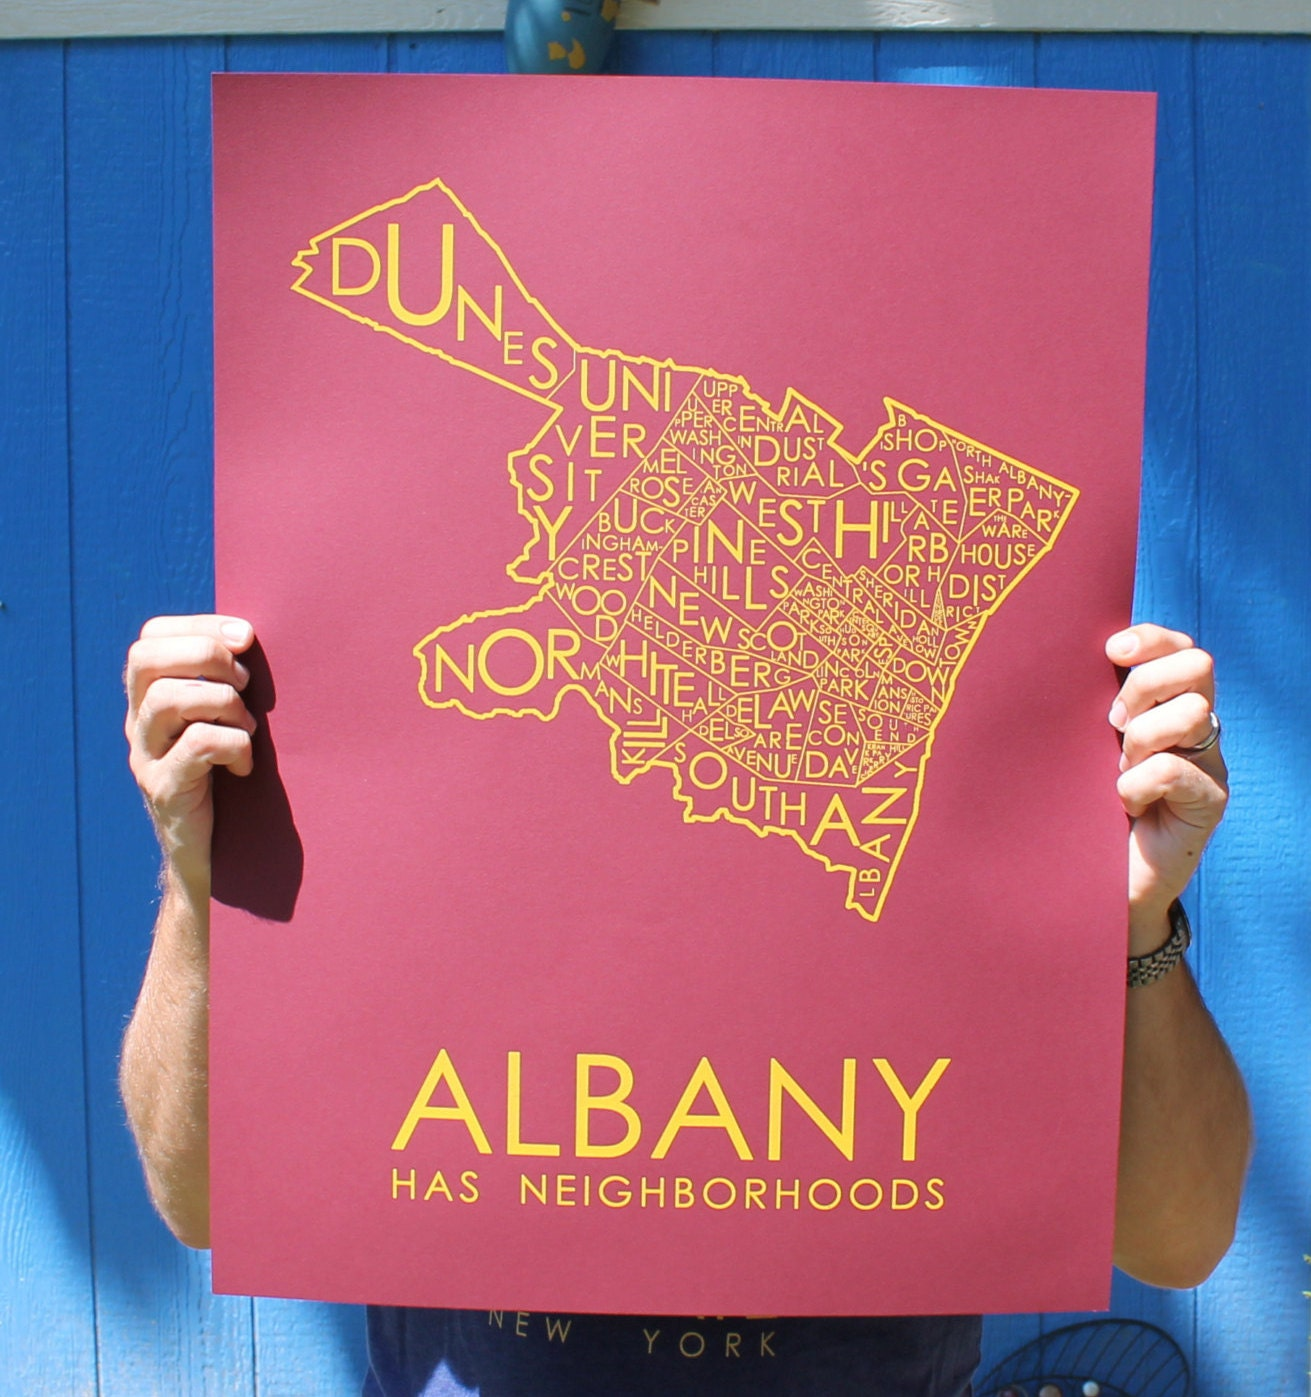 Albany Has Neighborhoods - RED!